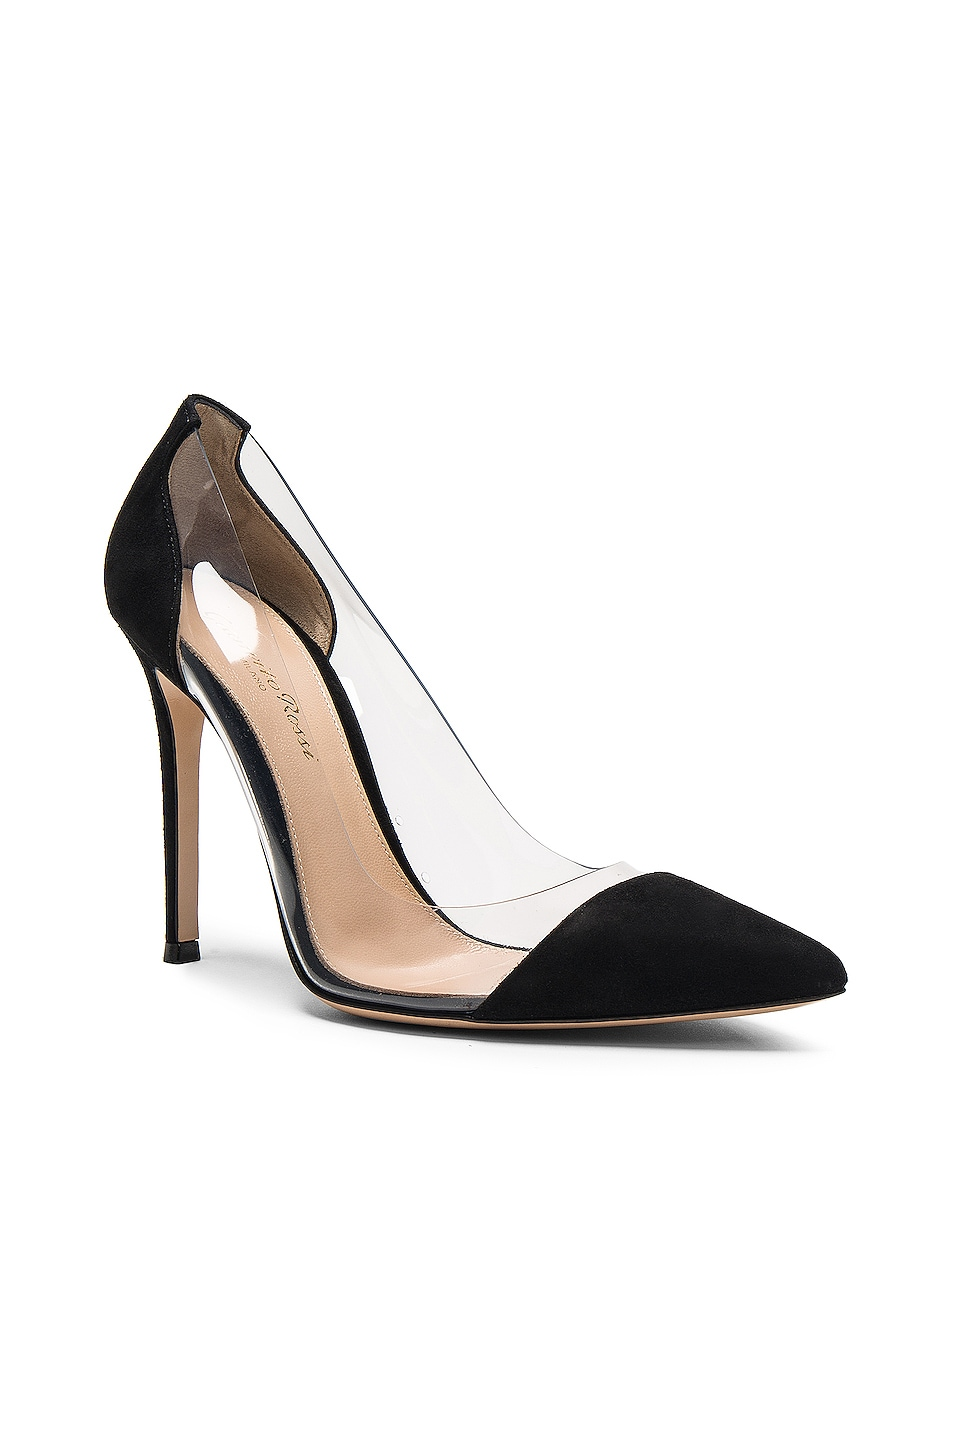 Image 2 of Gianvito Rossi Suede & Plexy Pumps in Black